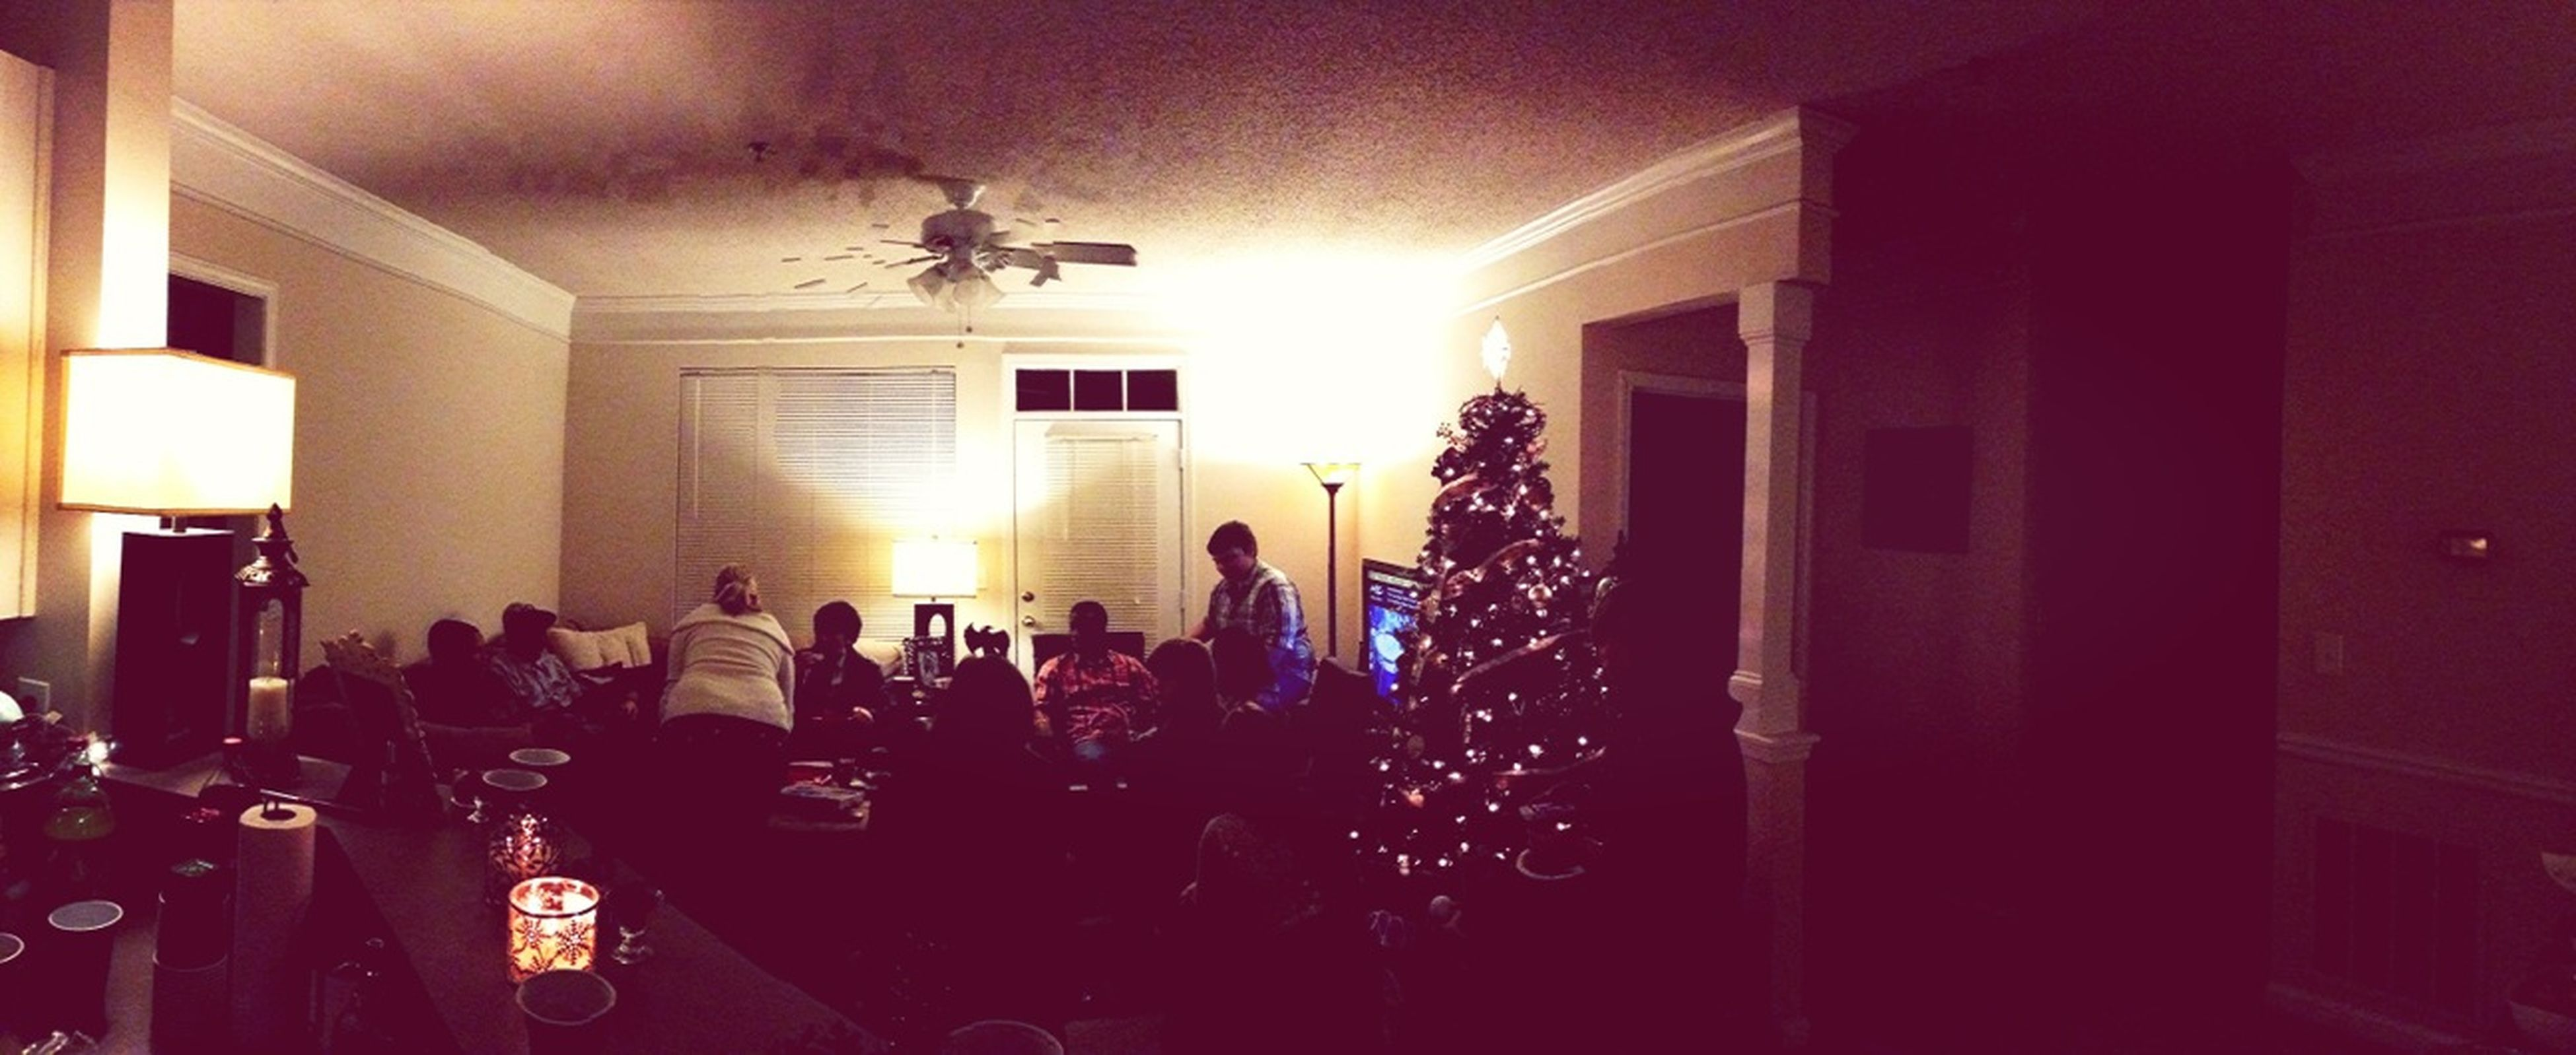 Element Worship Team Christmas Party Swag